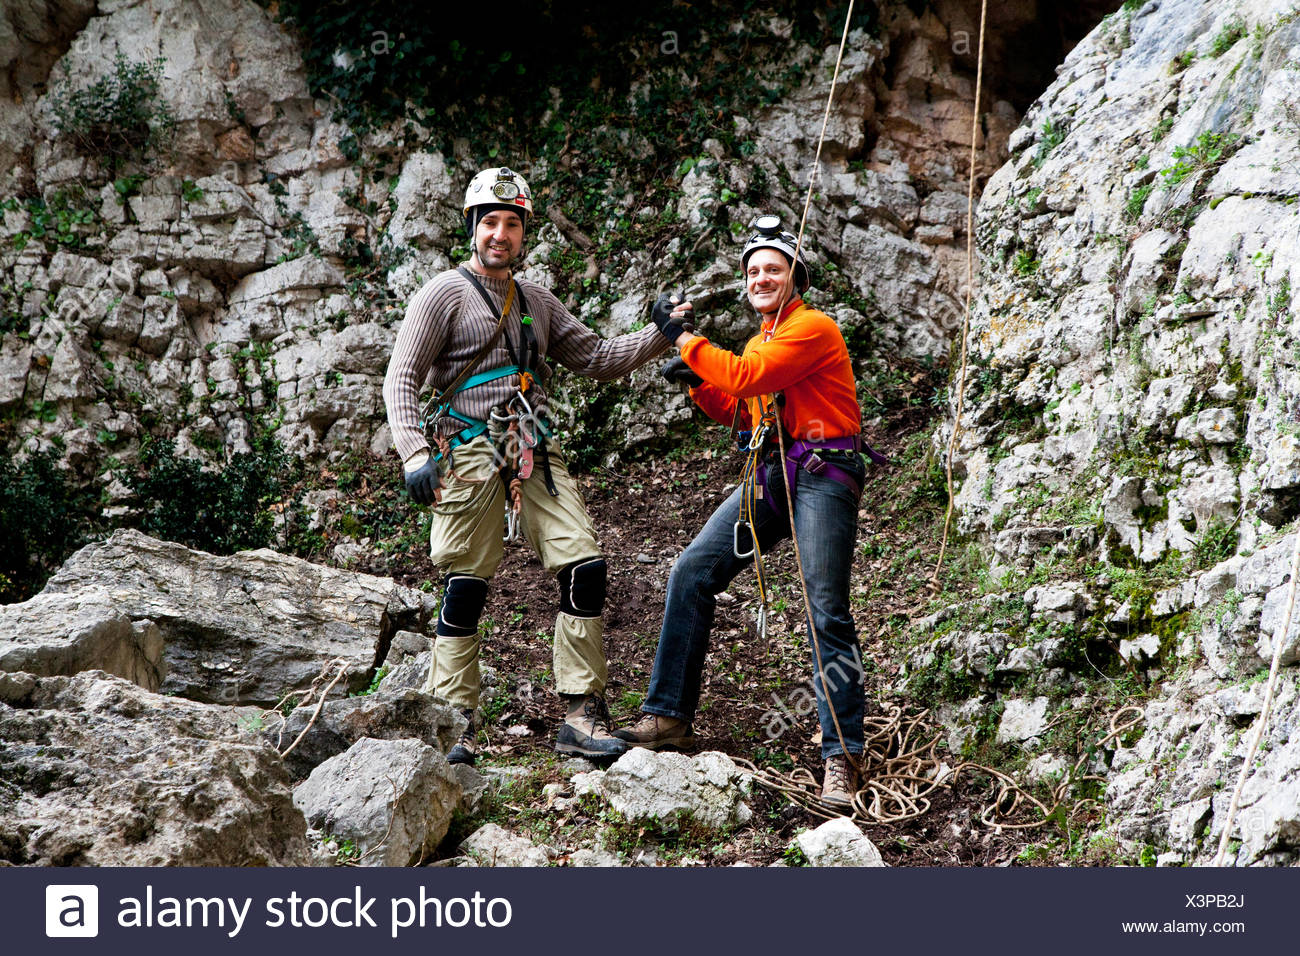 Italy, Two men wearing safety harnesses standing in front of cave - Stock Image